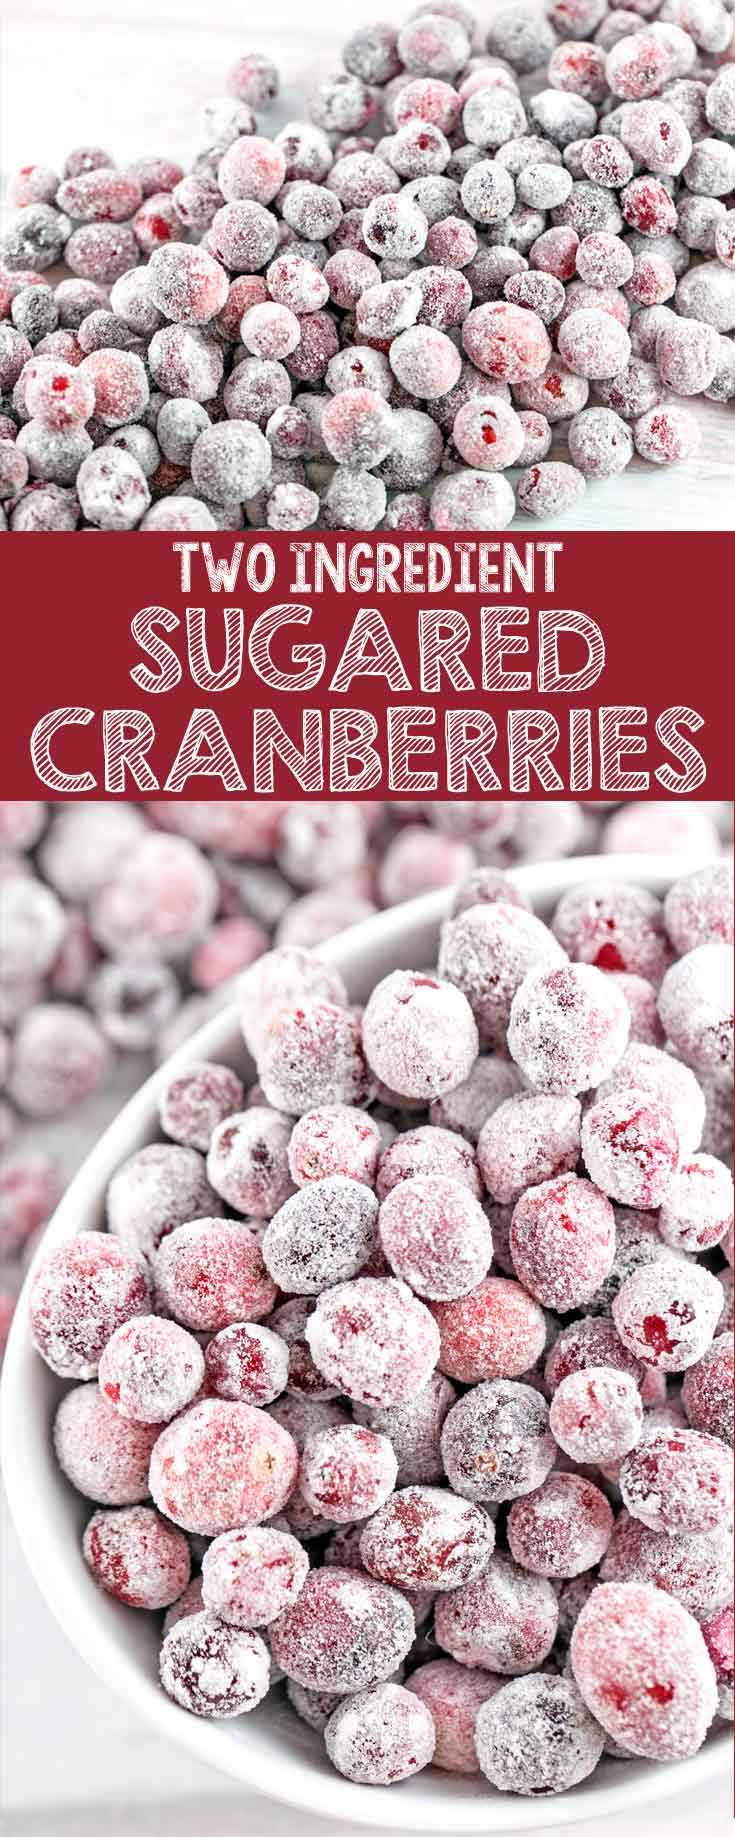 Sugared Cranberries: these two ingredient sweet-tart sugared cranberries are the perfect accompaniment to fancy desserts, charcuterie and cheese boards, or holiday snacking. {Bunsen Burner Bakery}